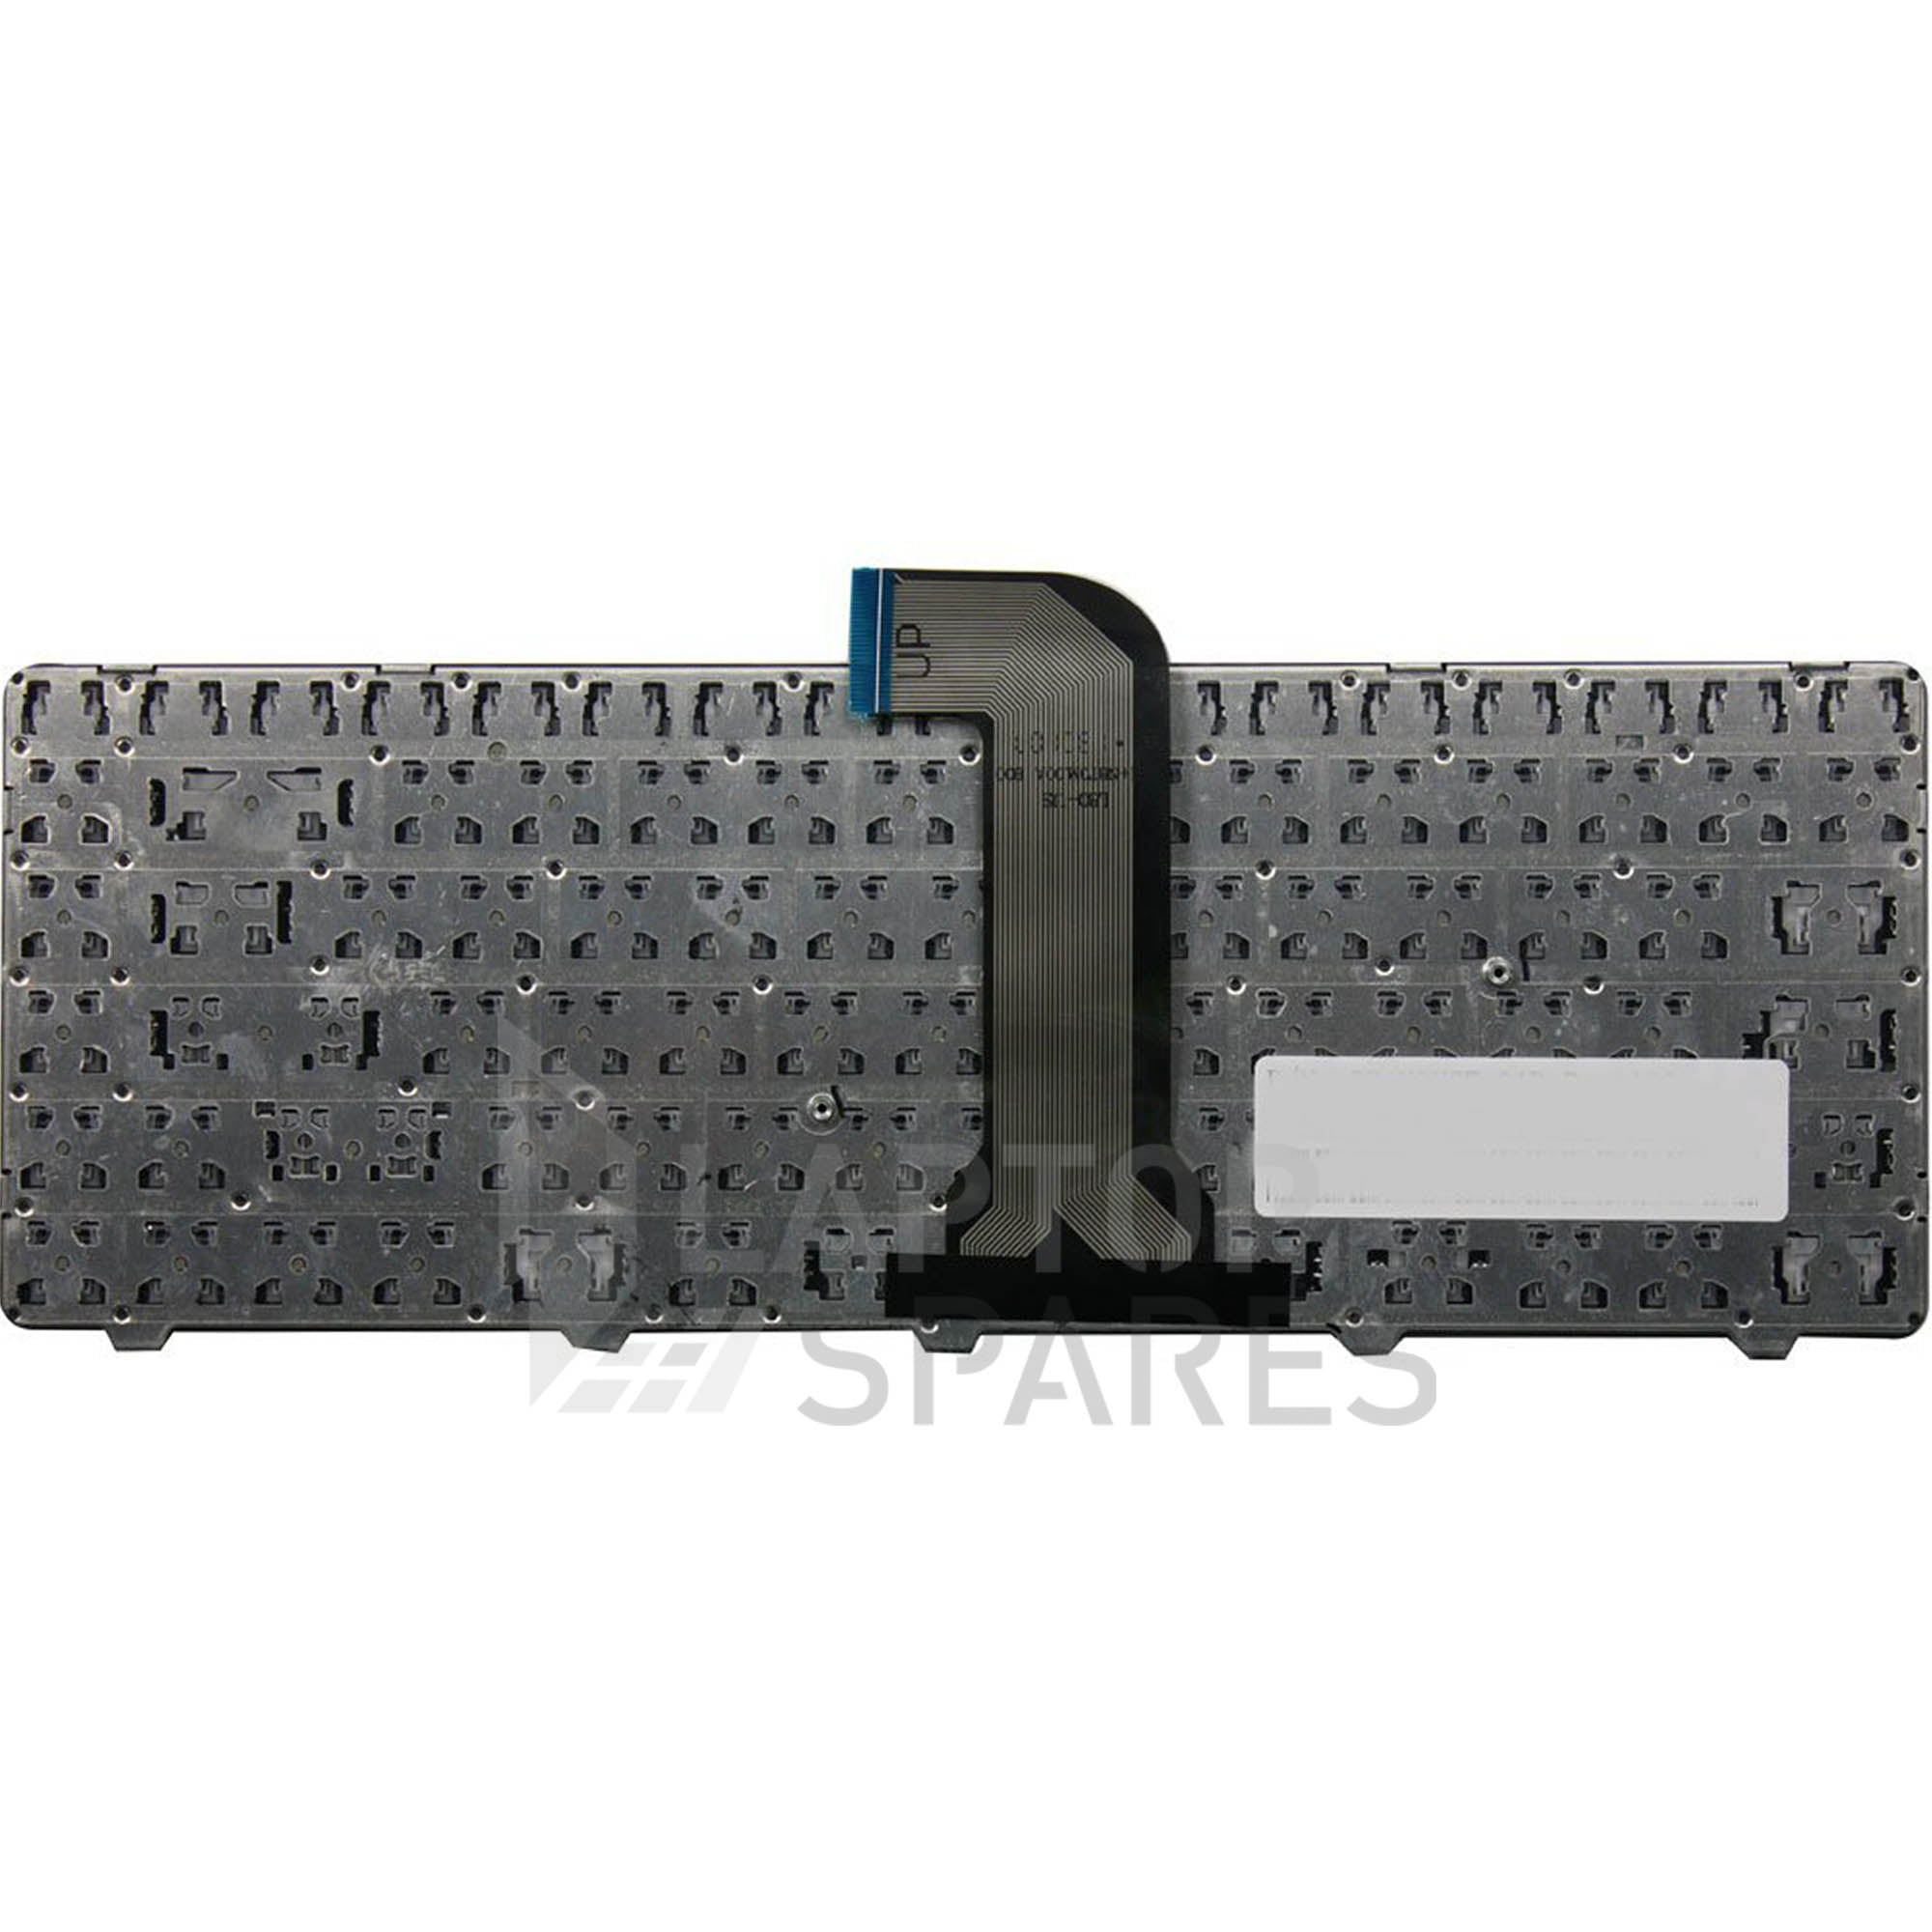 Dell Inspiron 14R 5421 5437 Laptop Keyboard